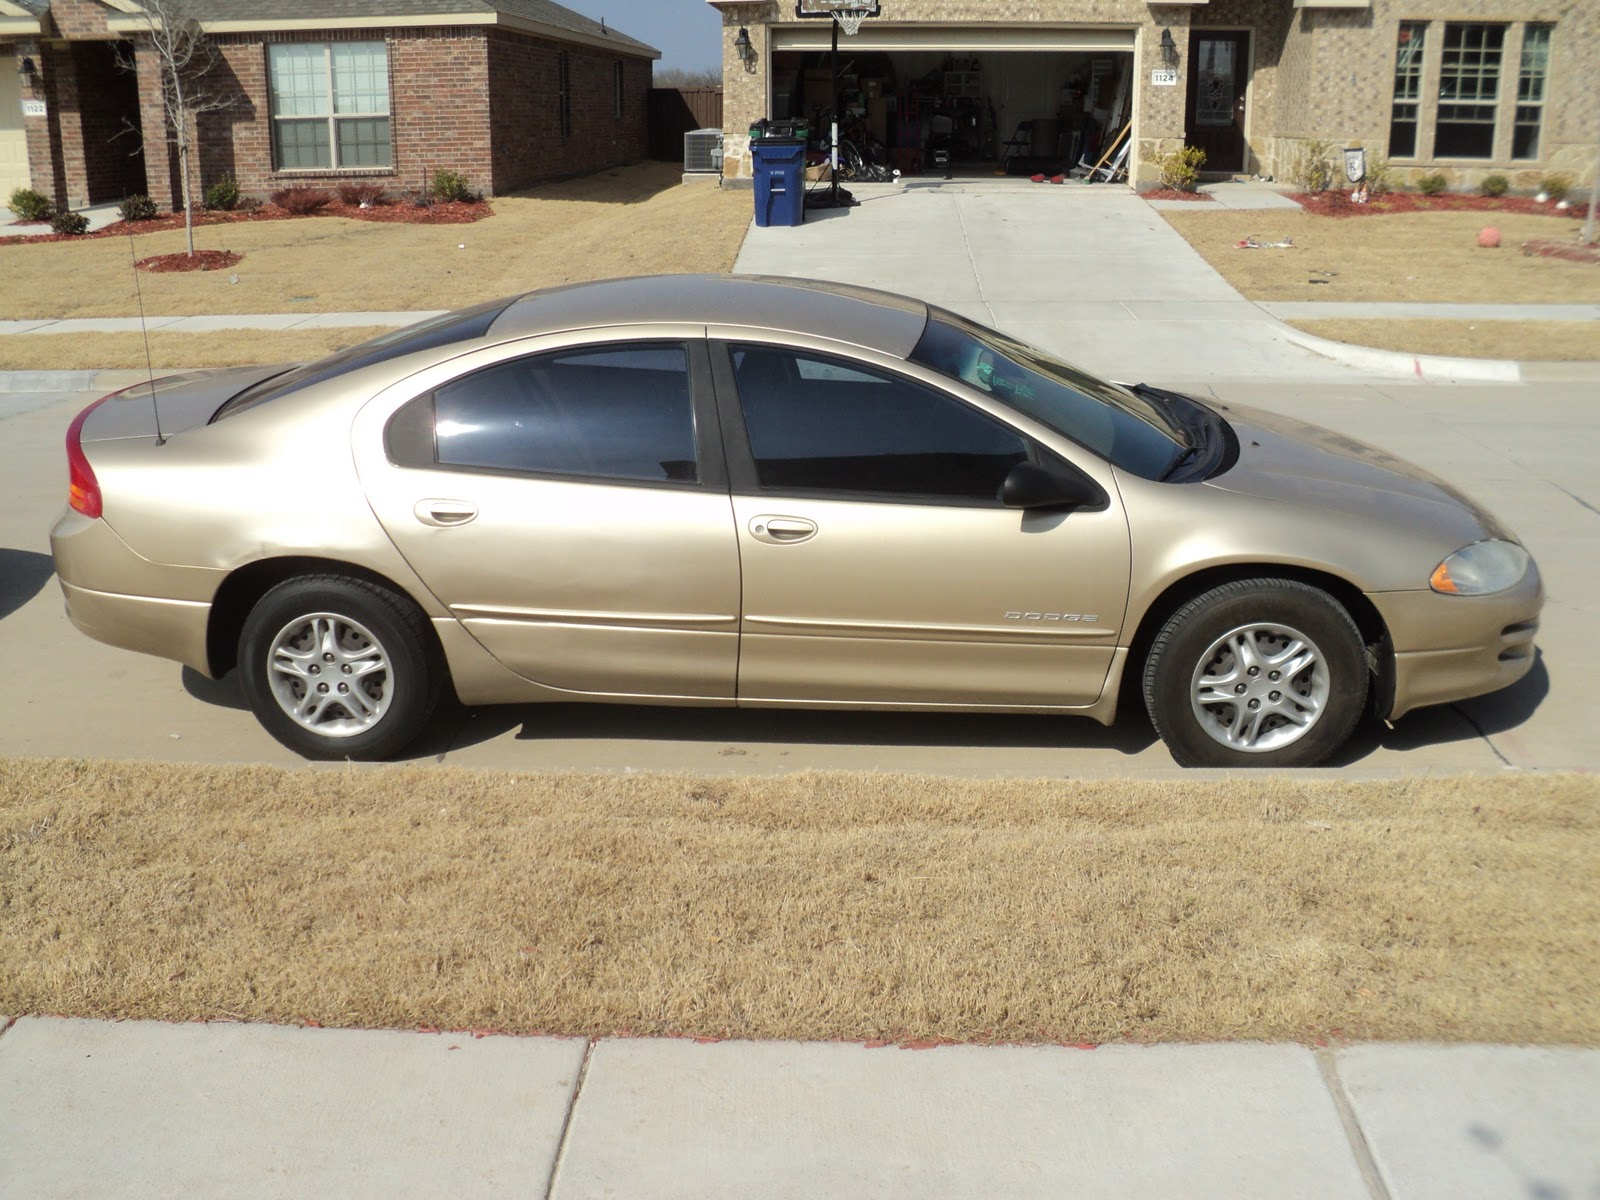 small resolution of 1999 dodge intrepid gold exterior tan gold cloth interior 97 xxx original miles good solid car for under 4000 asking 3995